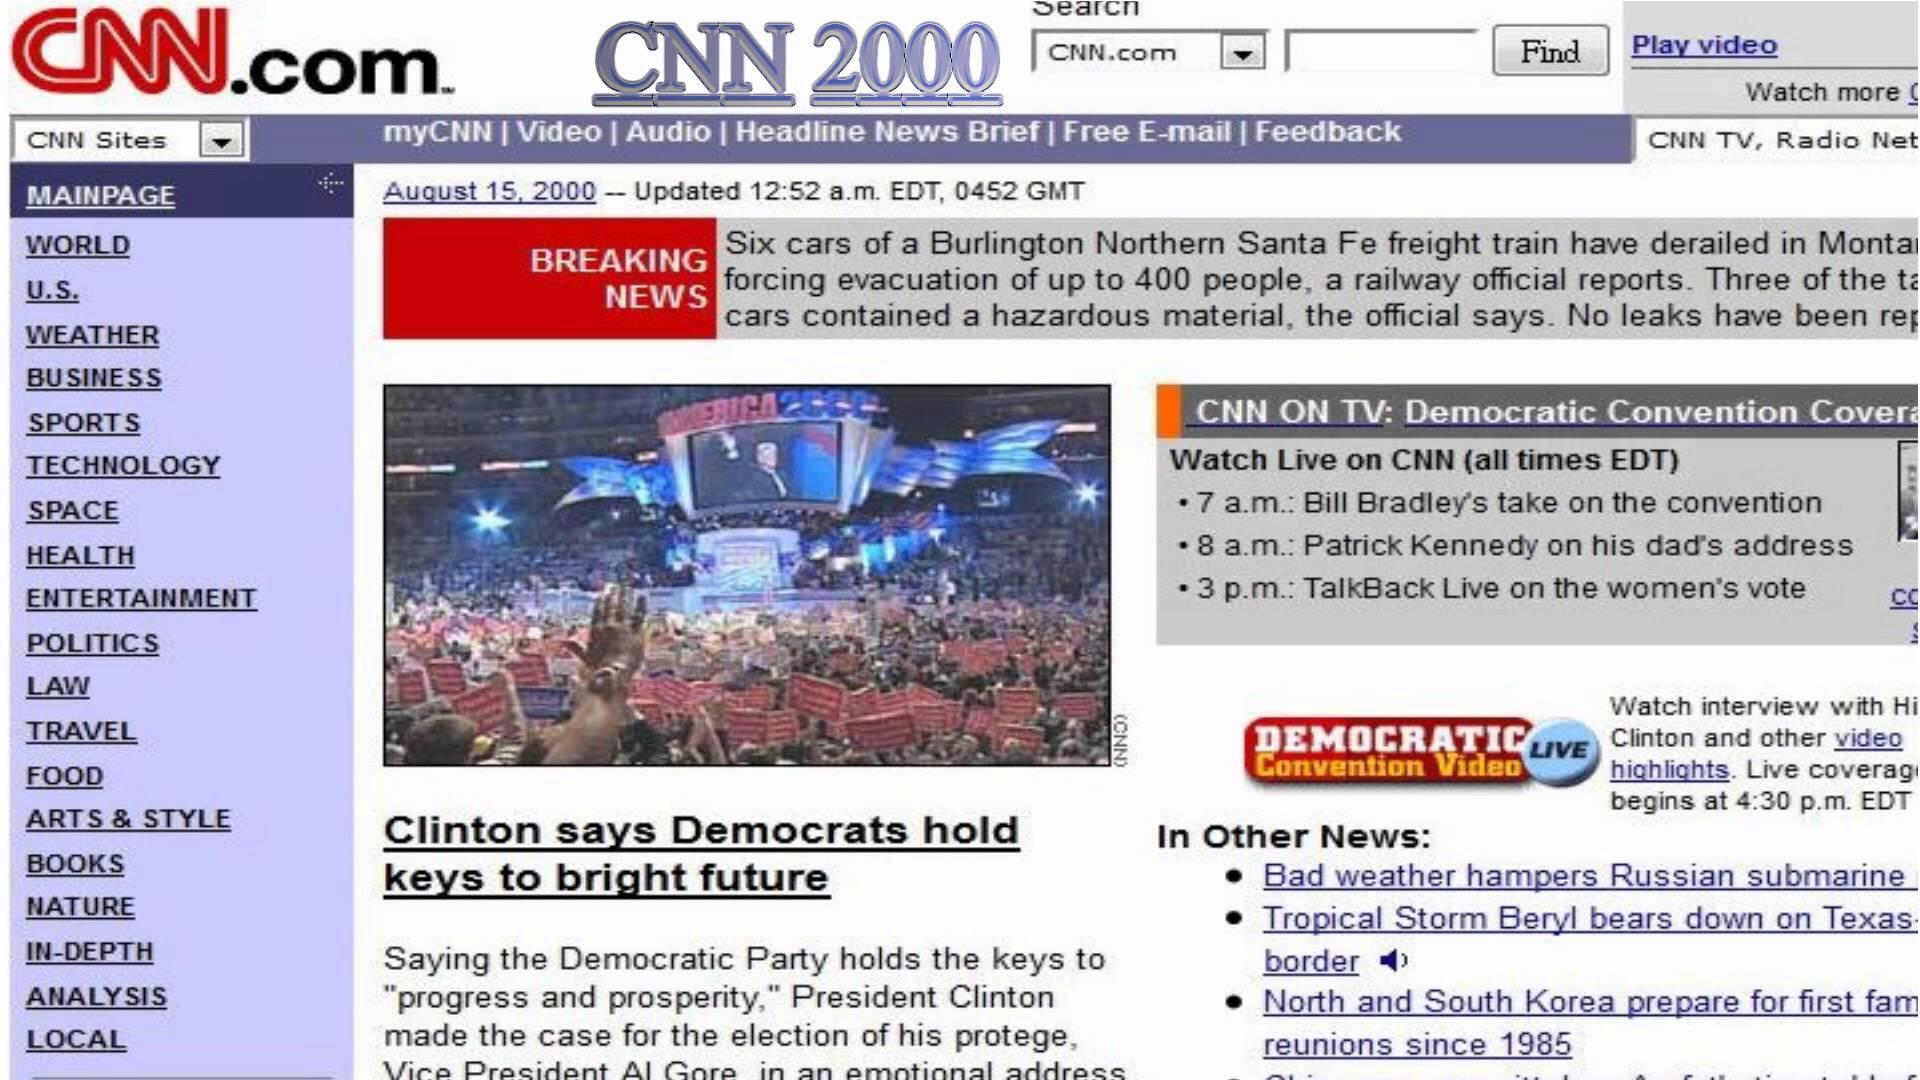 CNN.com website from 2000